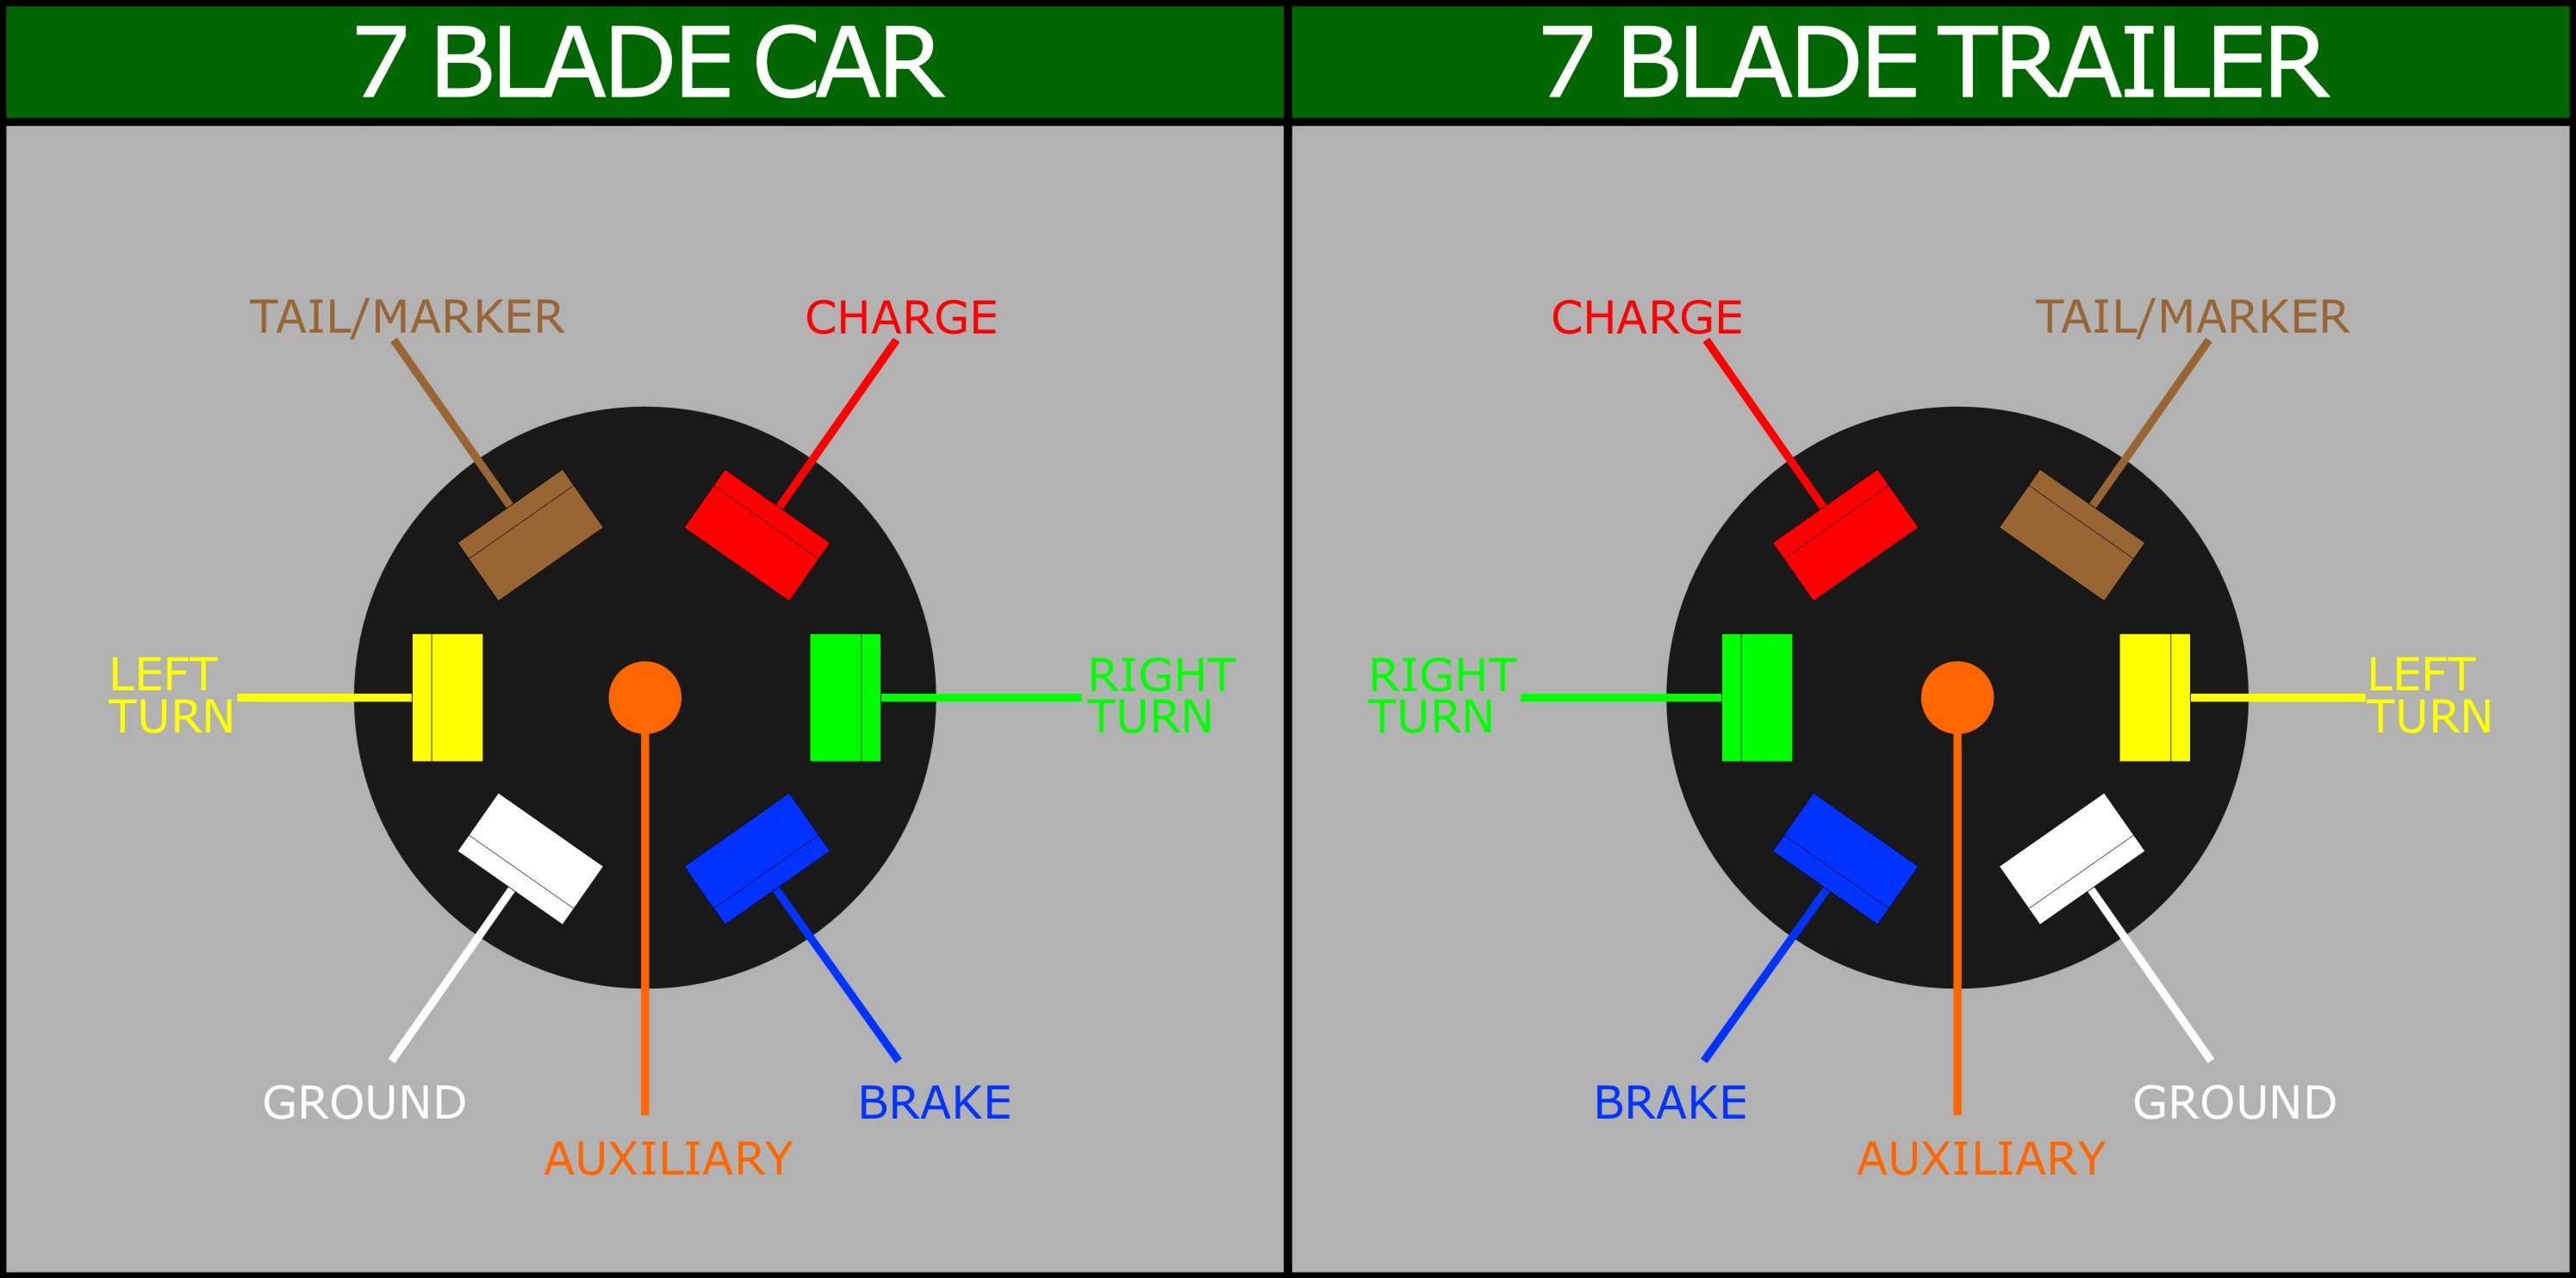 7 Blade Truck Wiring Diagram | Wiring Diagram